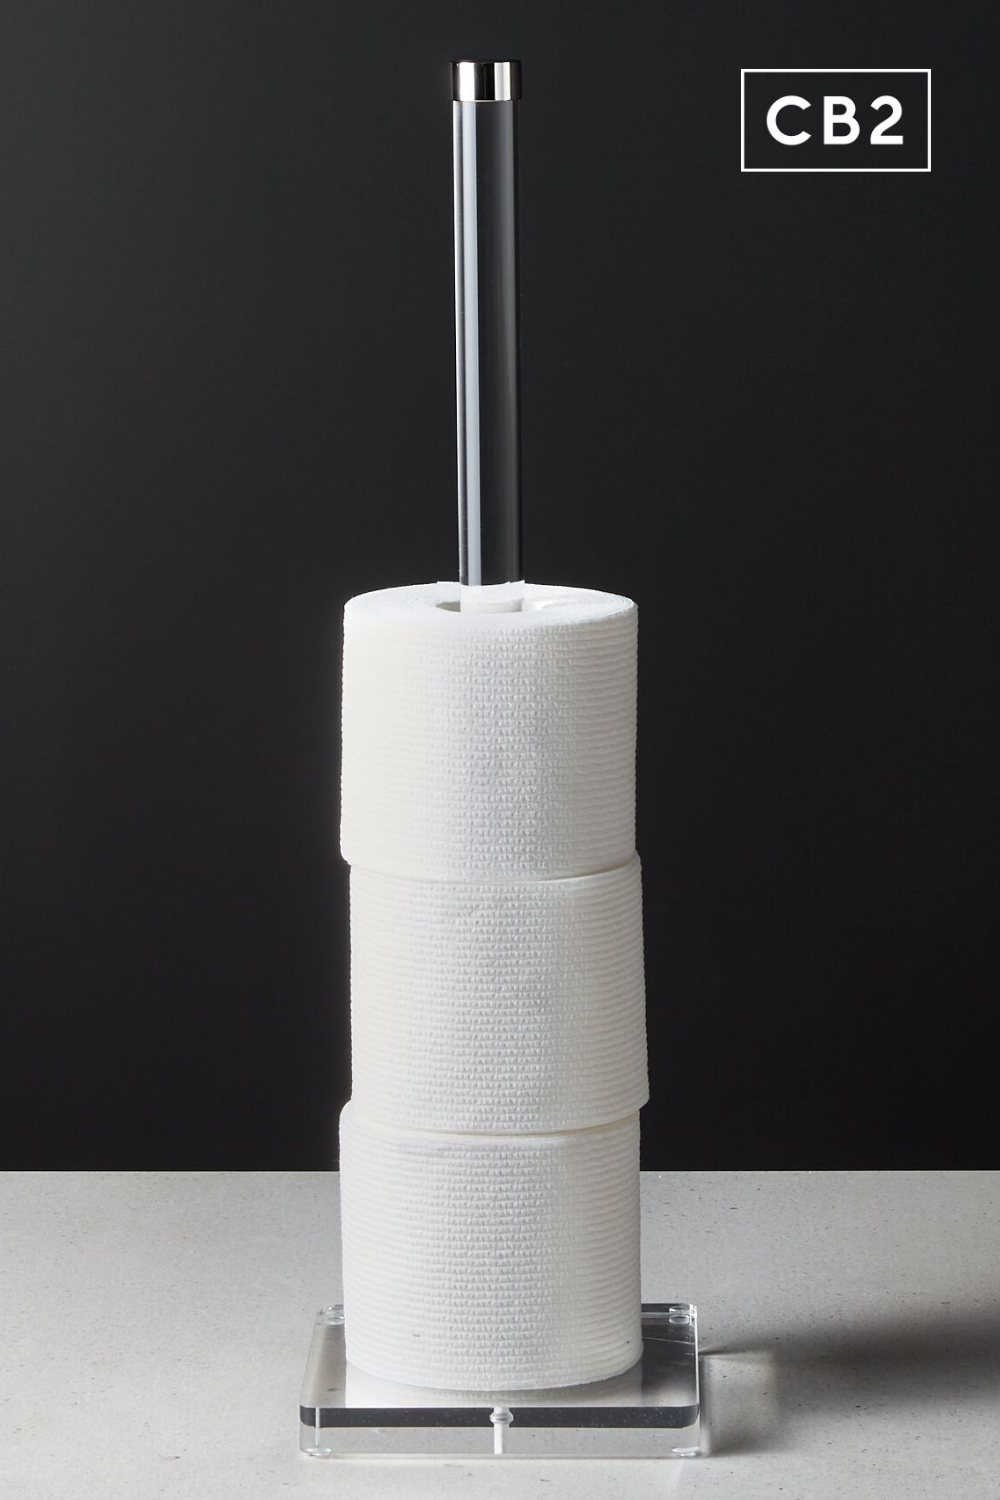 Acrylic And Polished Nickel Toilet Paper Storage Tower Reviews Cb2 Toilet Paper Storage Storage Towers Paper Storage